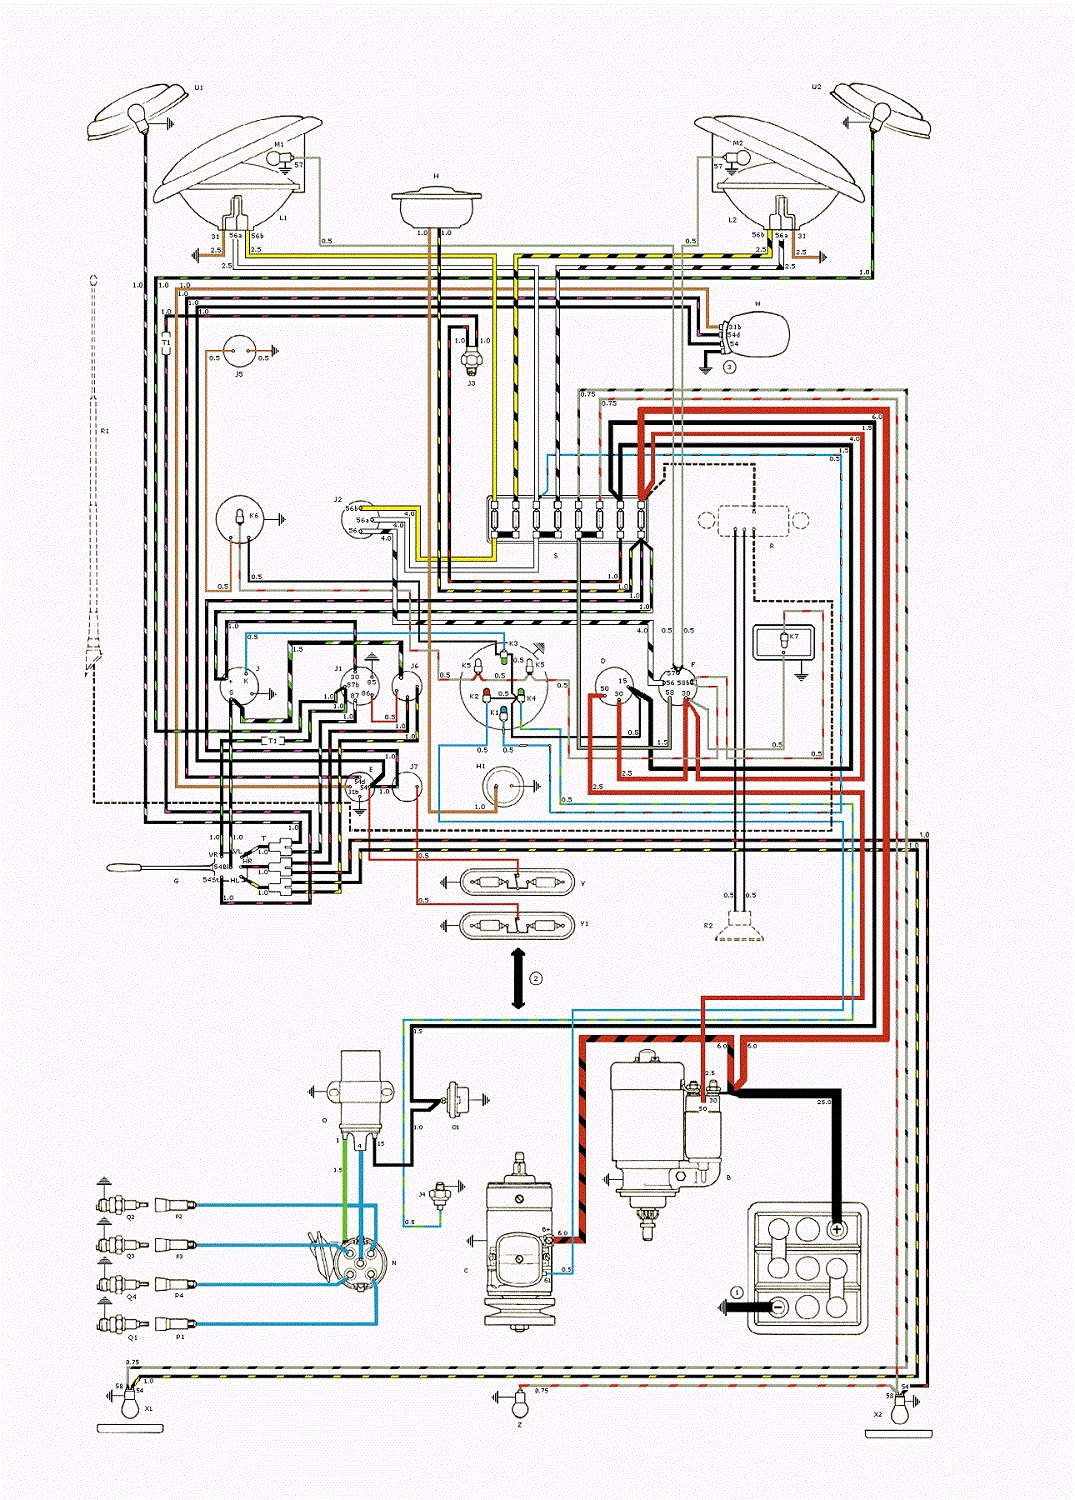 vw bus wiring diagrams 71 vw bus wiring diagram electrics hazard switch 66 bus loom - vw forum - vzi ... #15